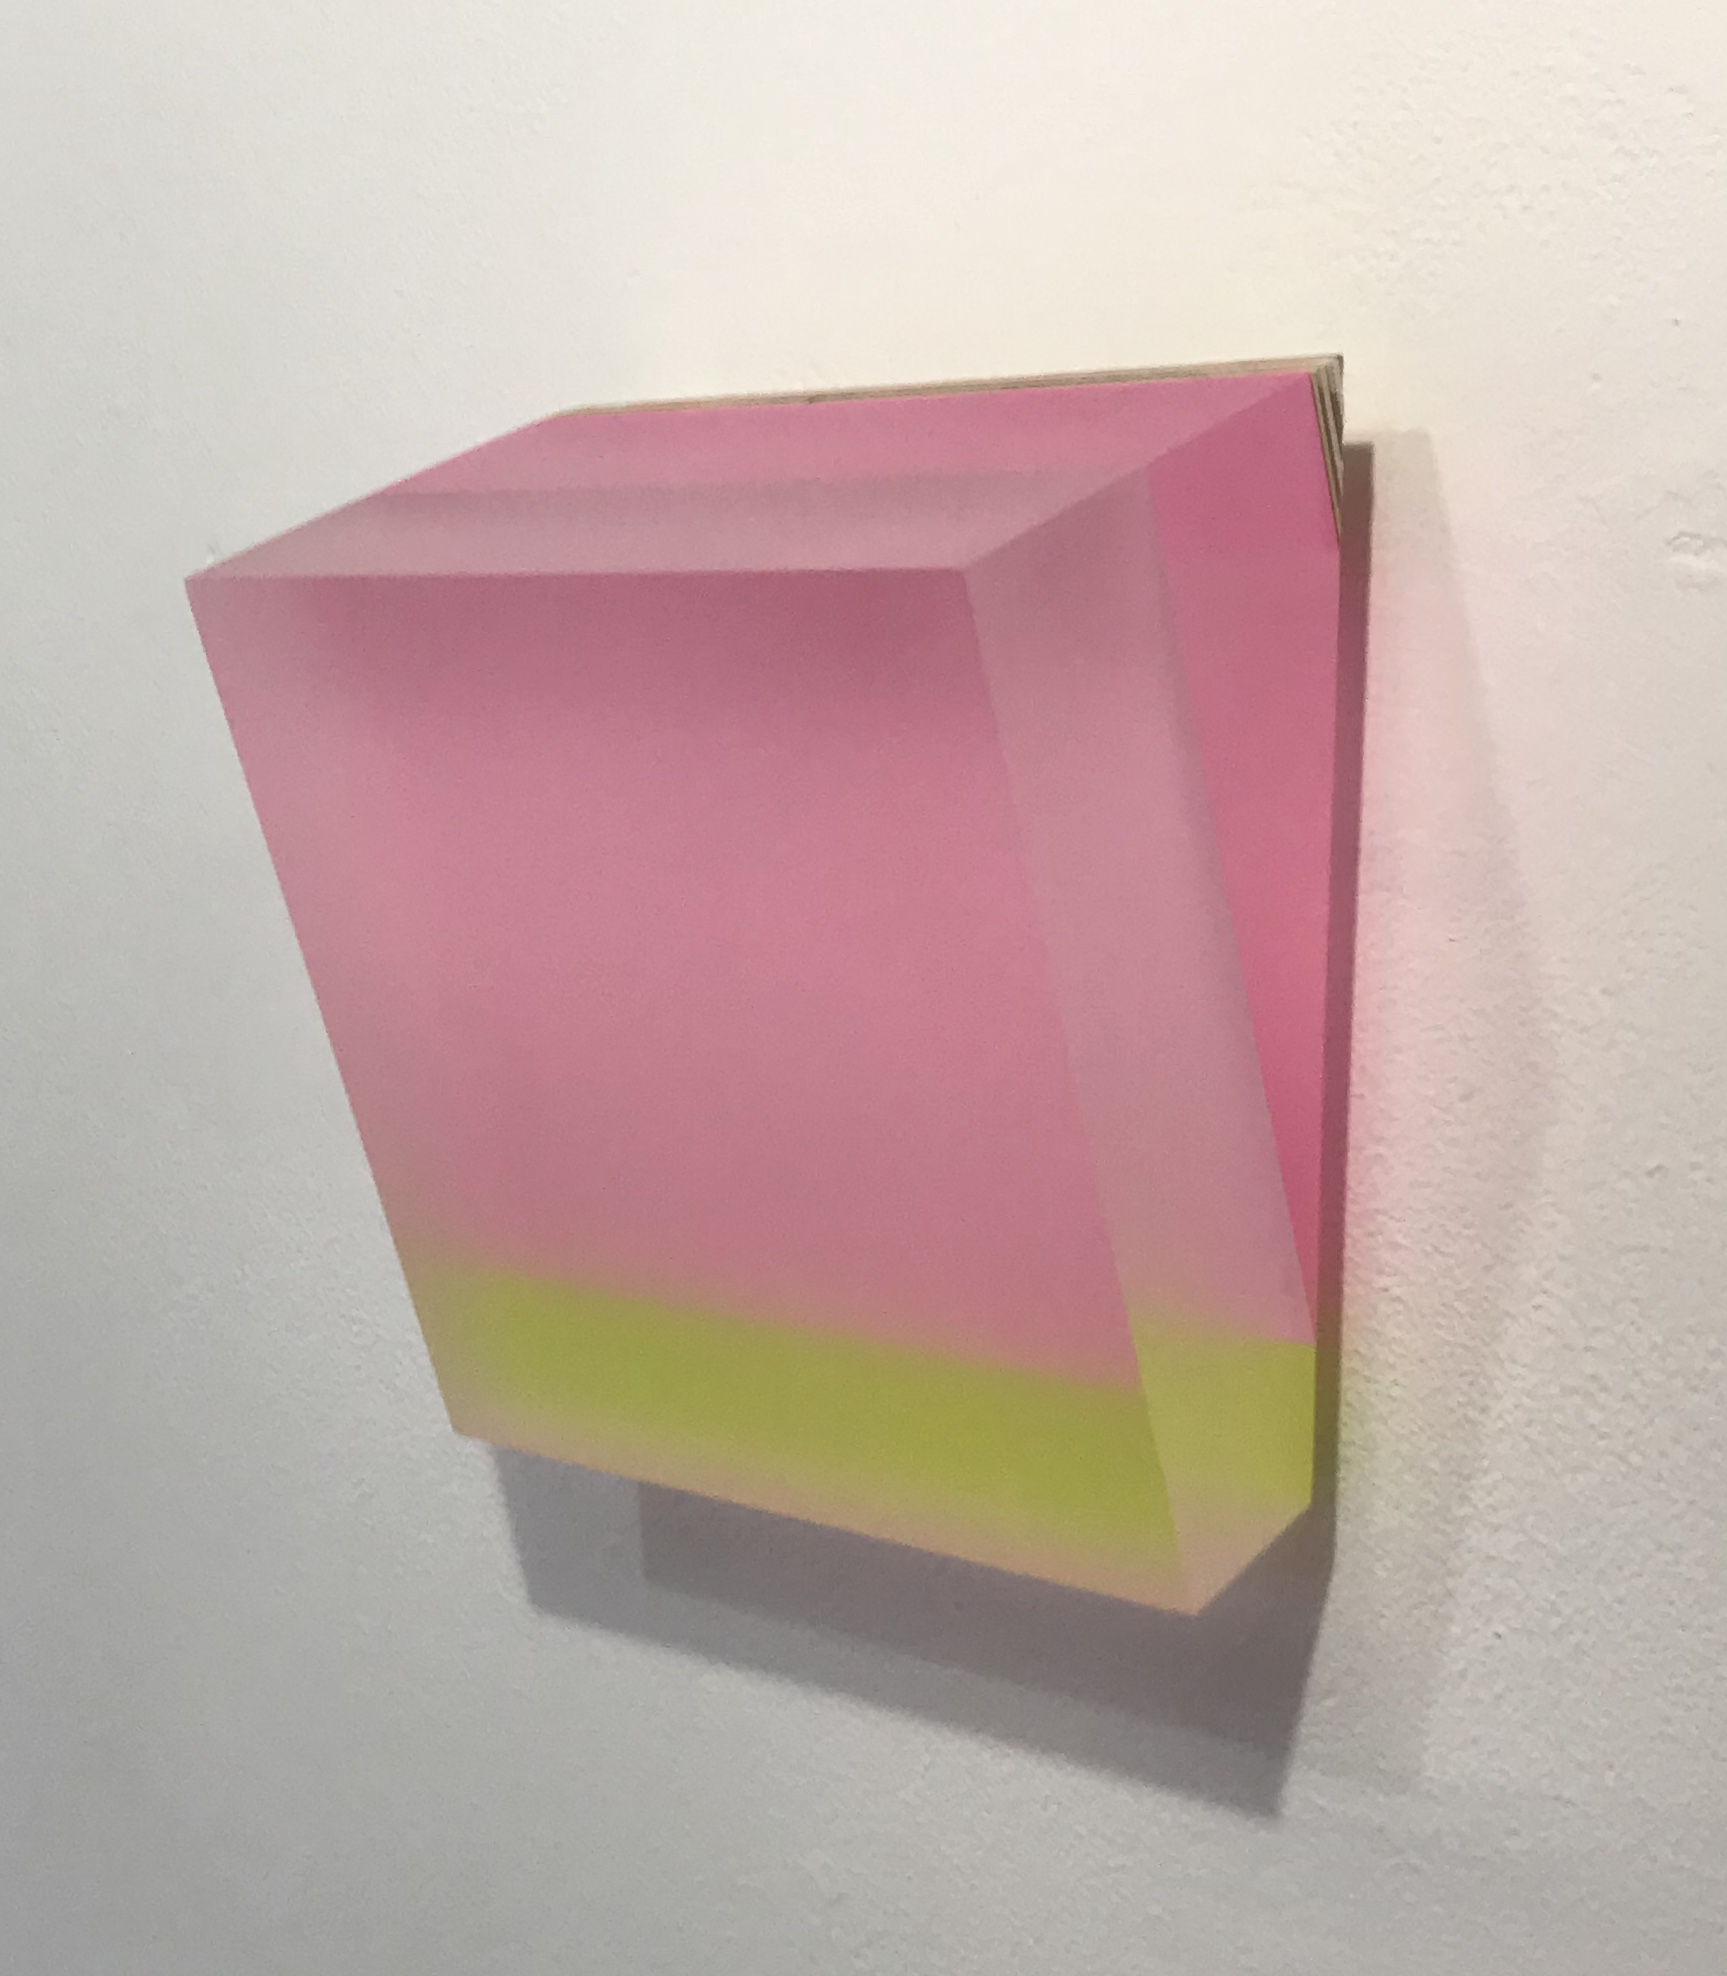 "Michelle Benoit, ""Sky brick series"", 2018. Mixed media on lucite and apple ply. 6.25x7.125 in."